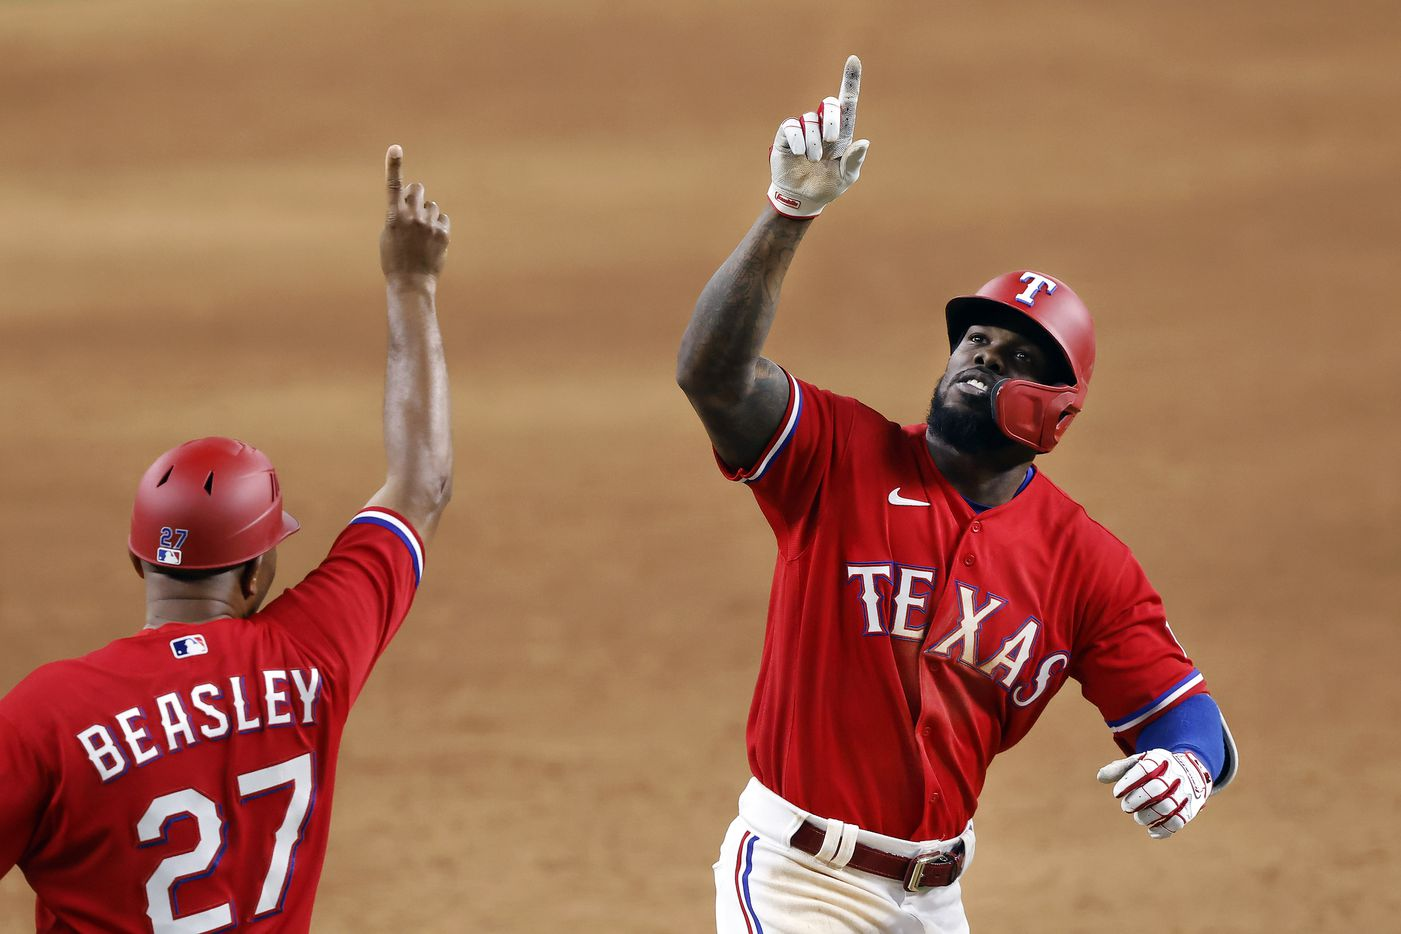 Texas Rangers batter Adolis Garcia (right) celebrates his walk off 3-run homer in the tenth inning Houston Astros at Globe Life Field in Arlington, Texas, Friday, May 21, 2021. It was the first walk off home run in Globe Life Field history, winning 7-5.  (Tom Fox/The Dallas Morning News)